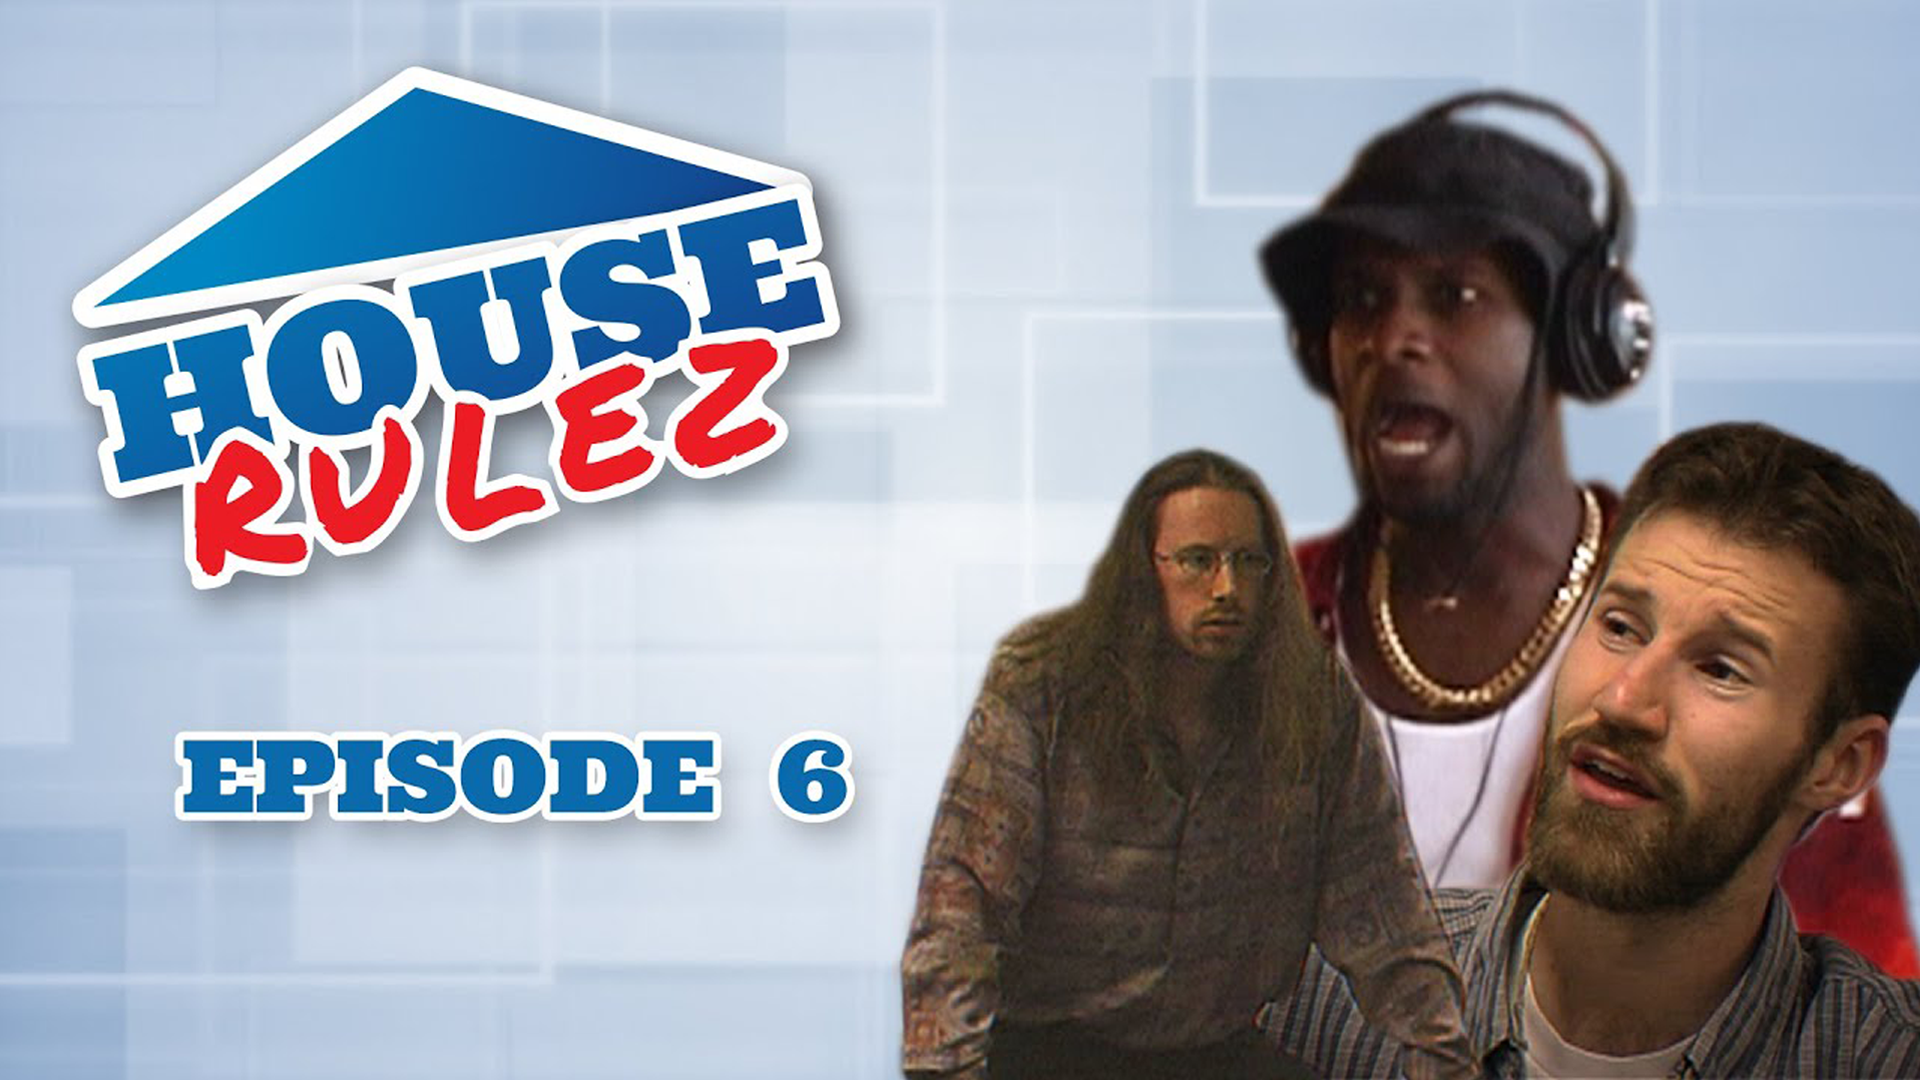 House Rulez Episode 6